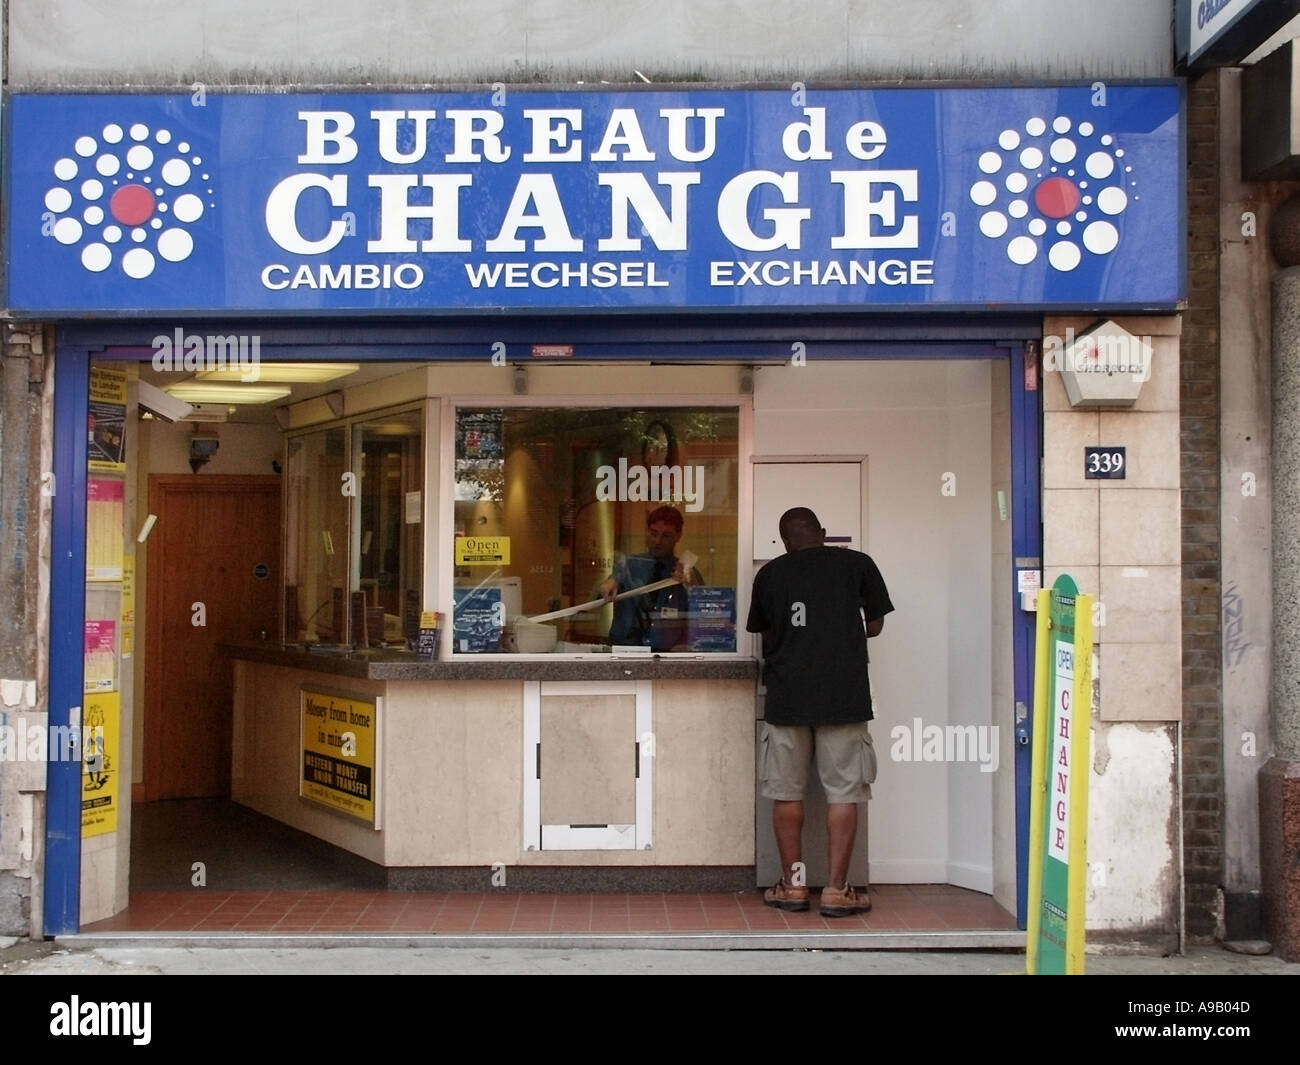 Bureau de change reims bureau de change reims my weekend - Post office bureau de change exchange rates ...